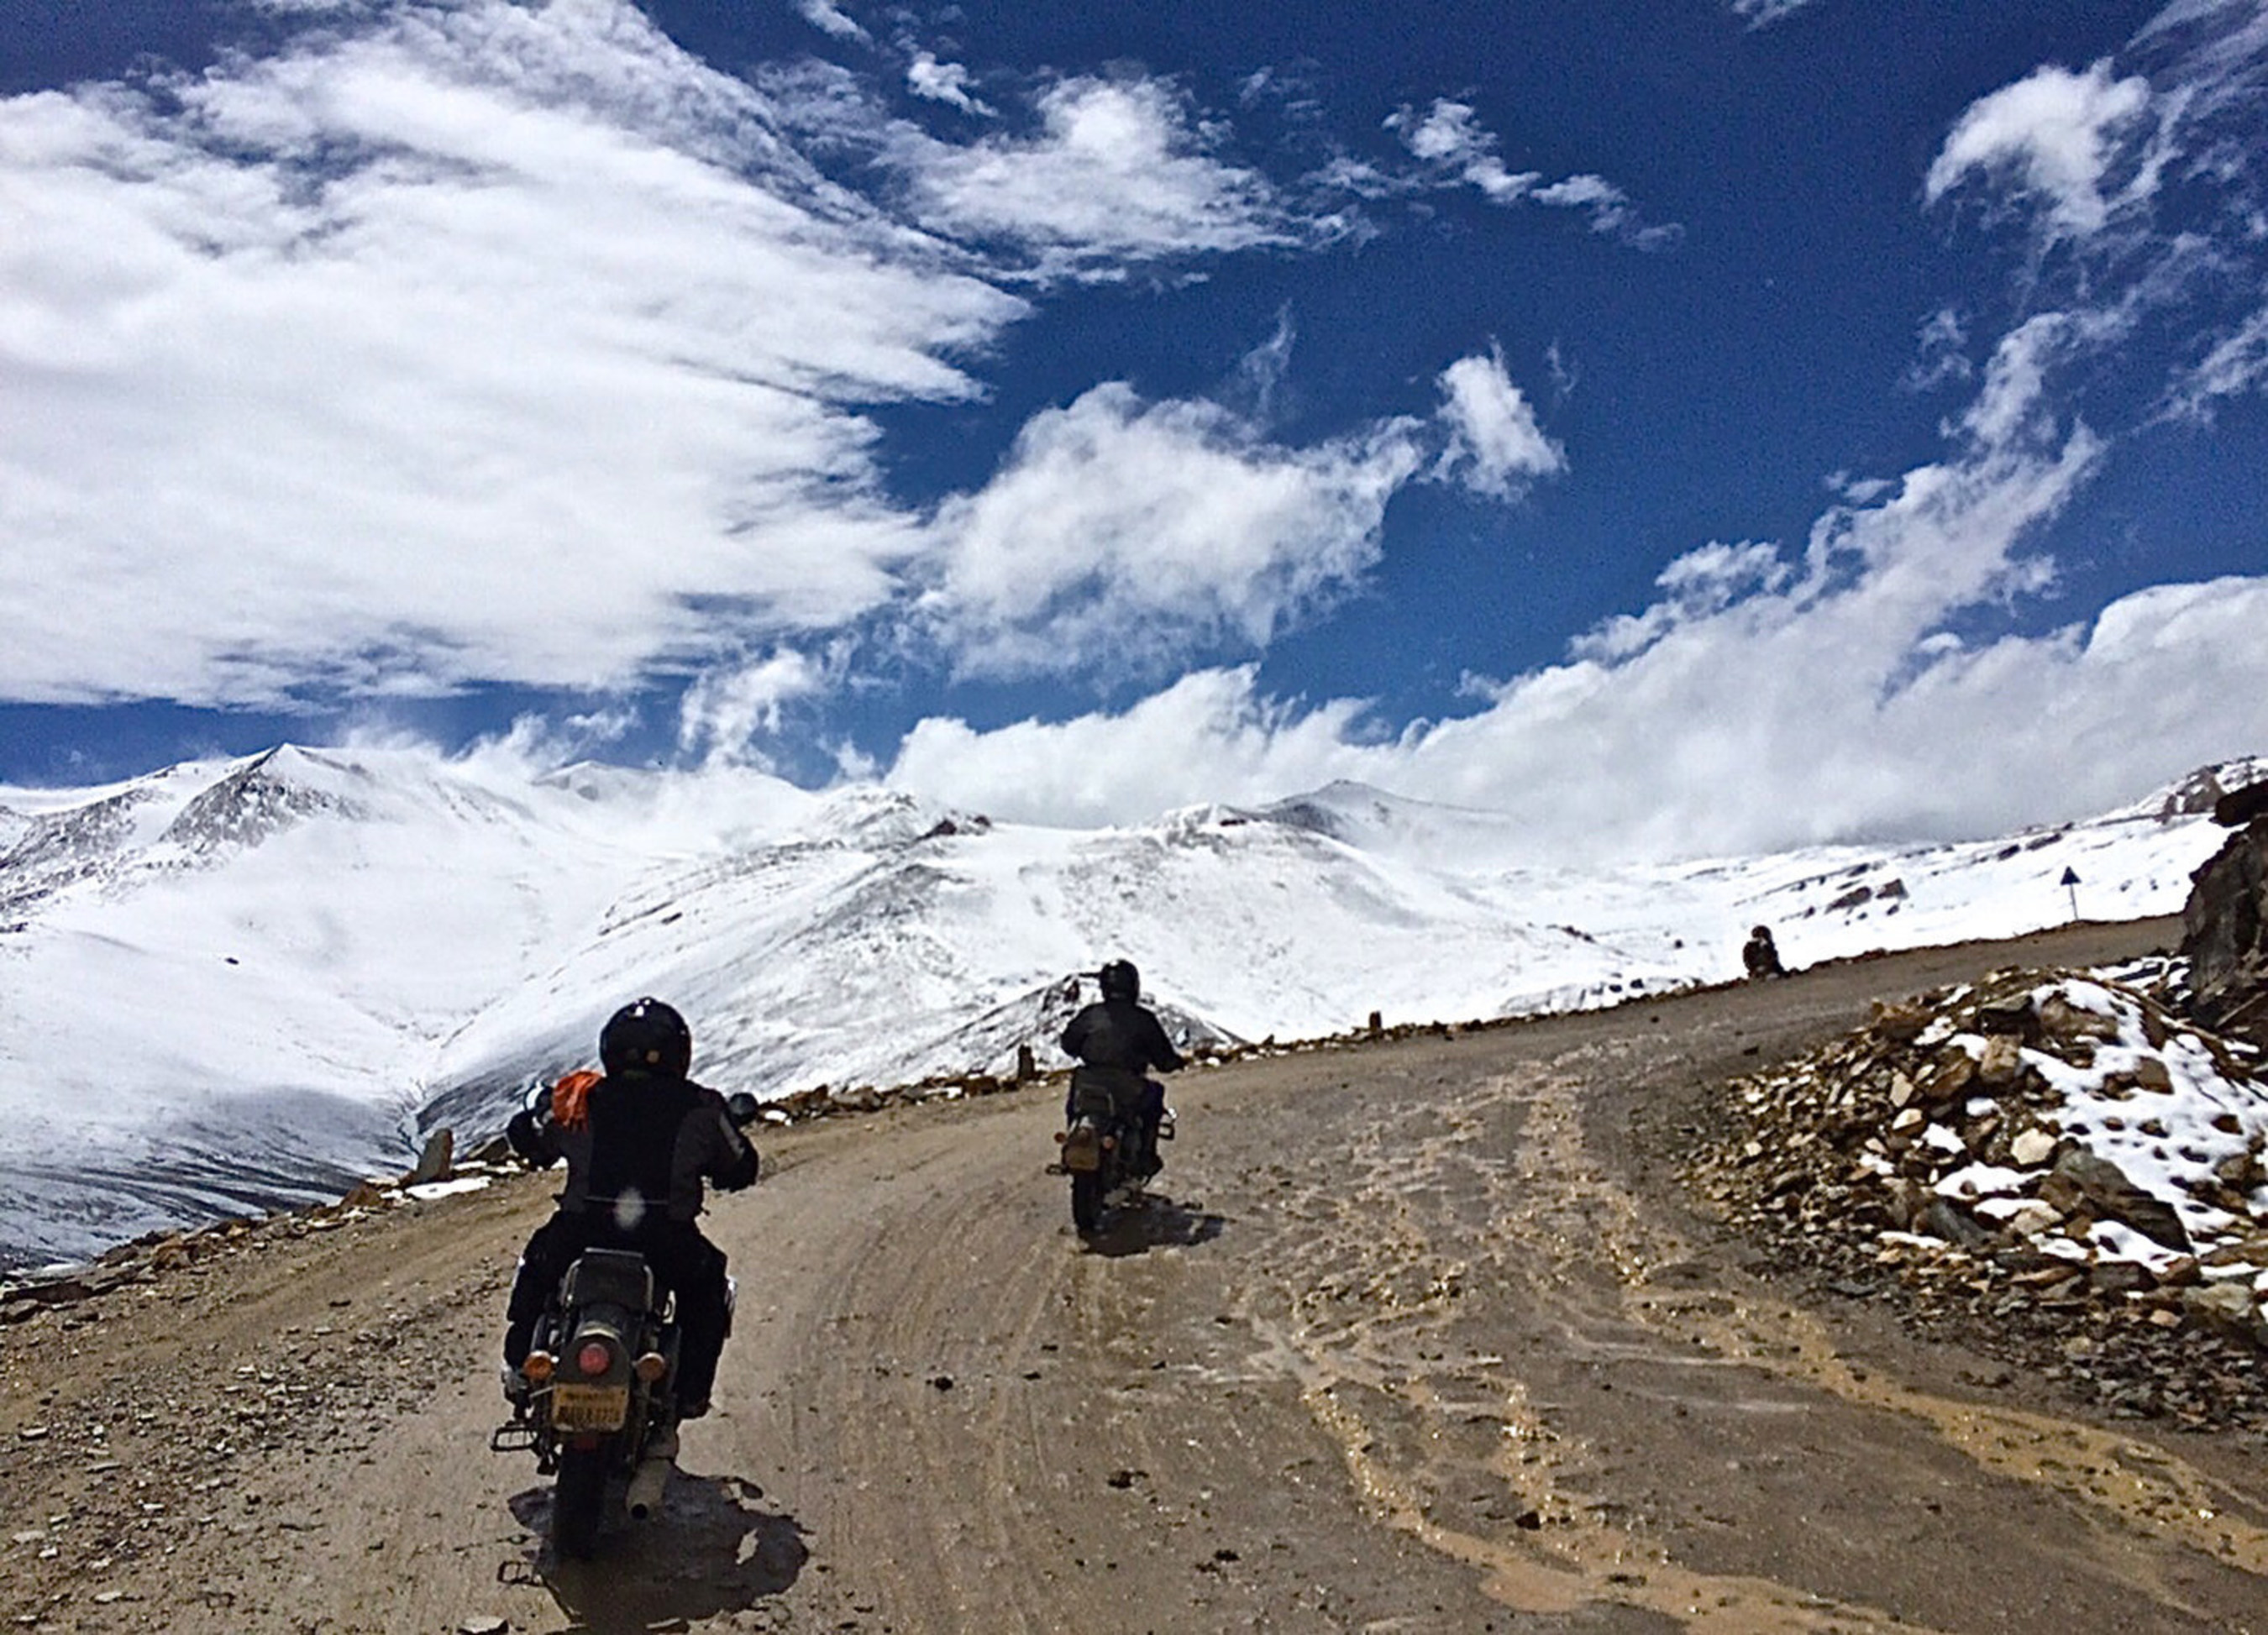 On the road with Extreme Bike Tours - Mighty Himalayan tour - over Tanglang La - one of world's highest ...